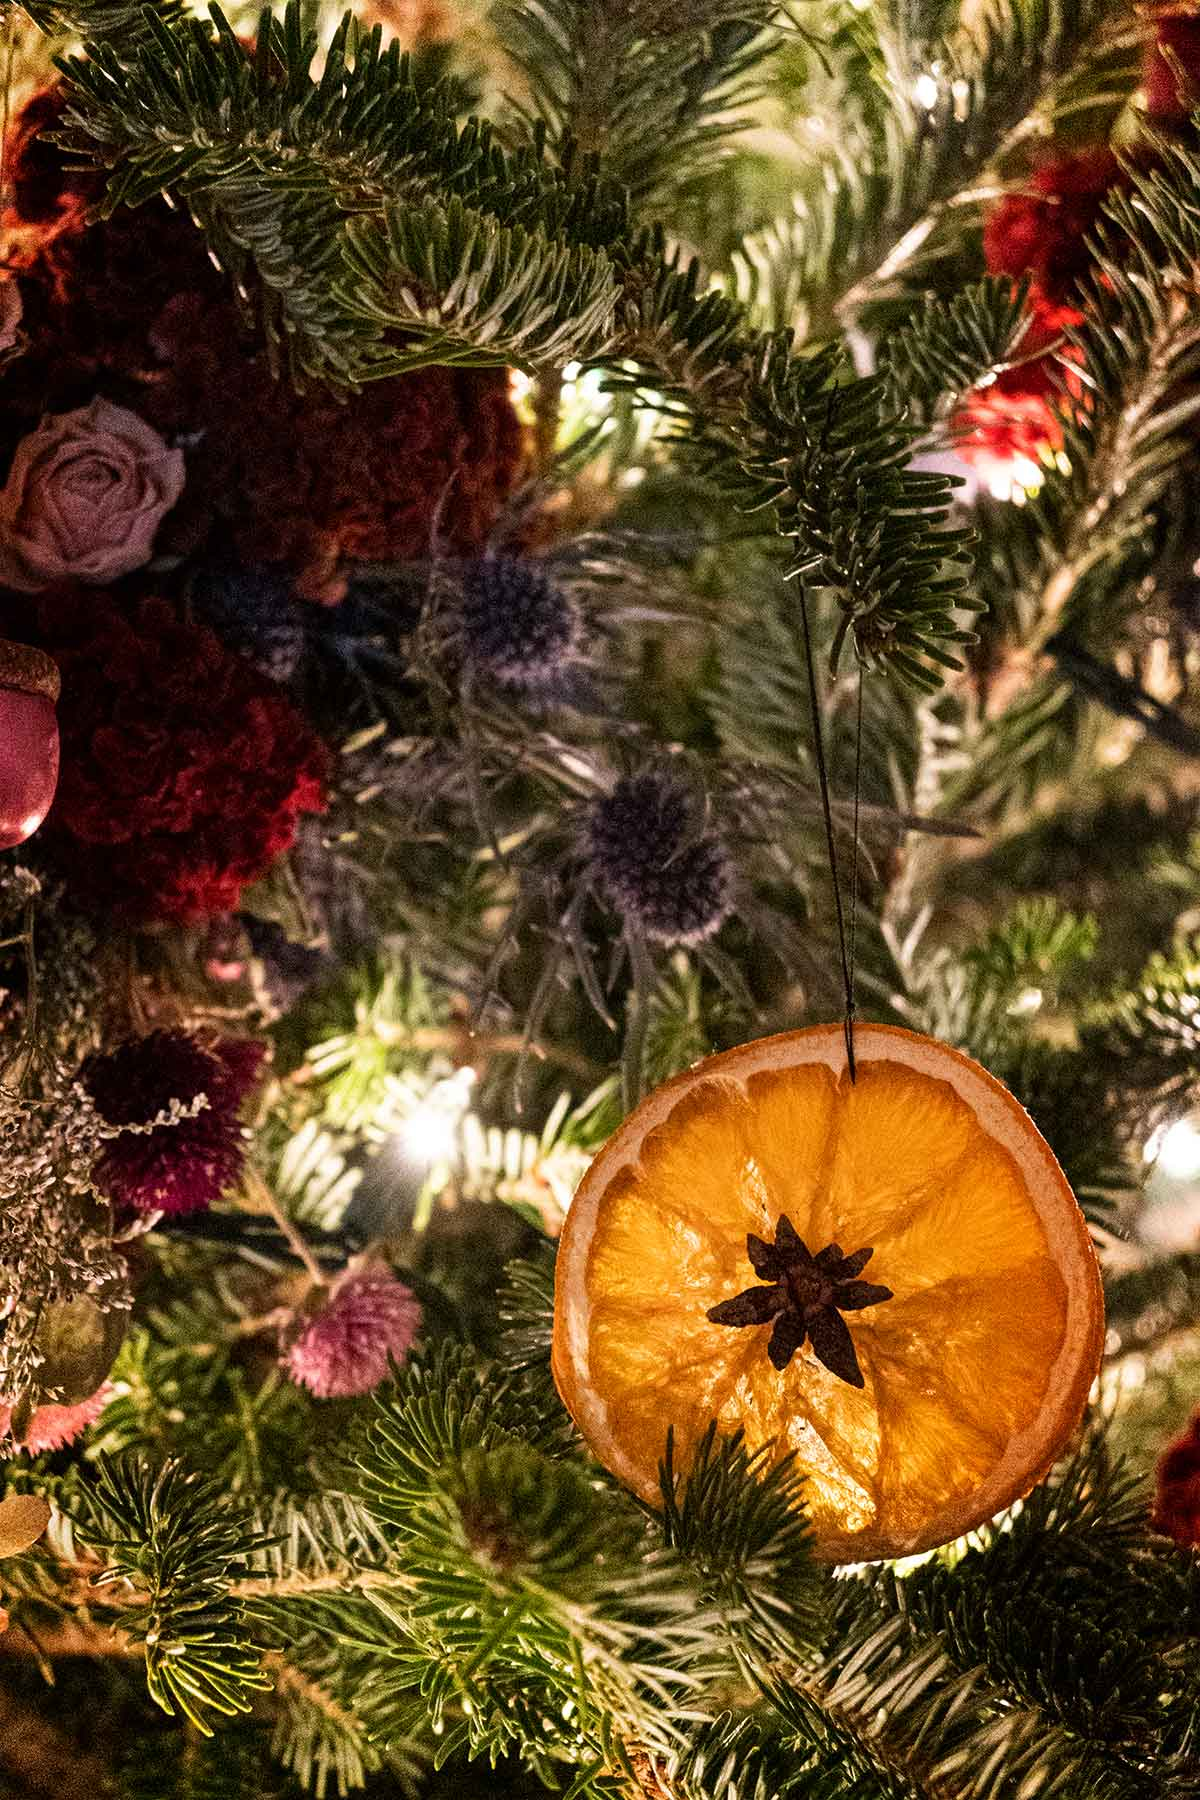 A Christmas ornament made from an orange slice on a tree, beside flowers tucked into the boughs.